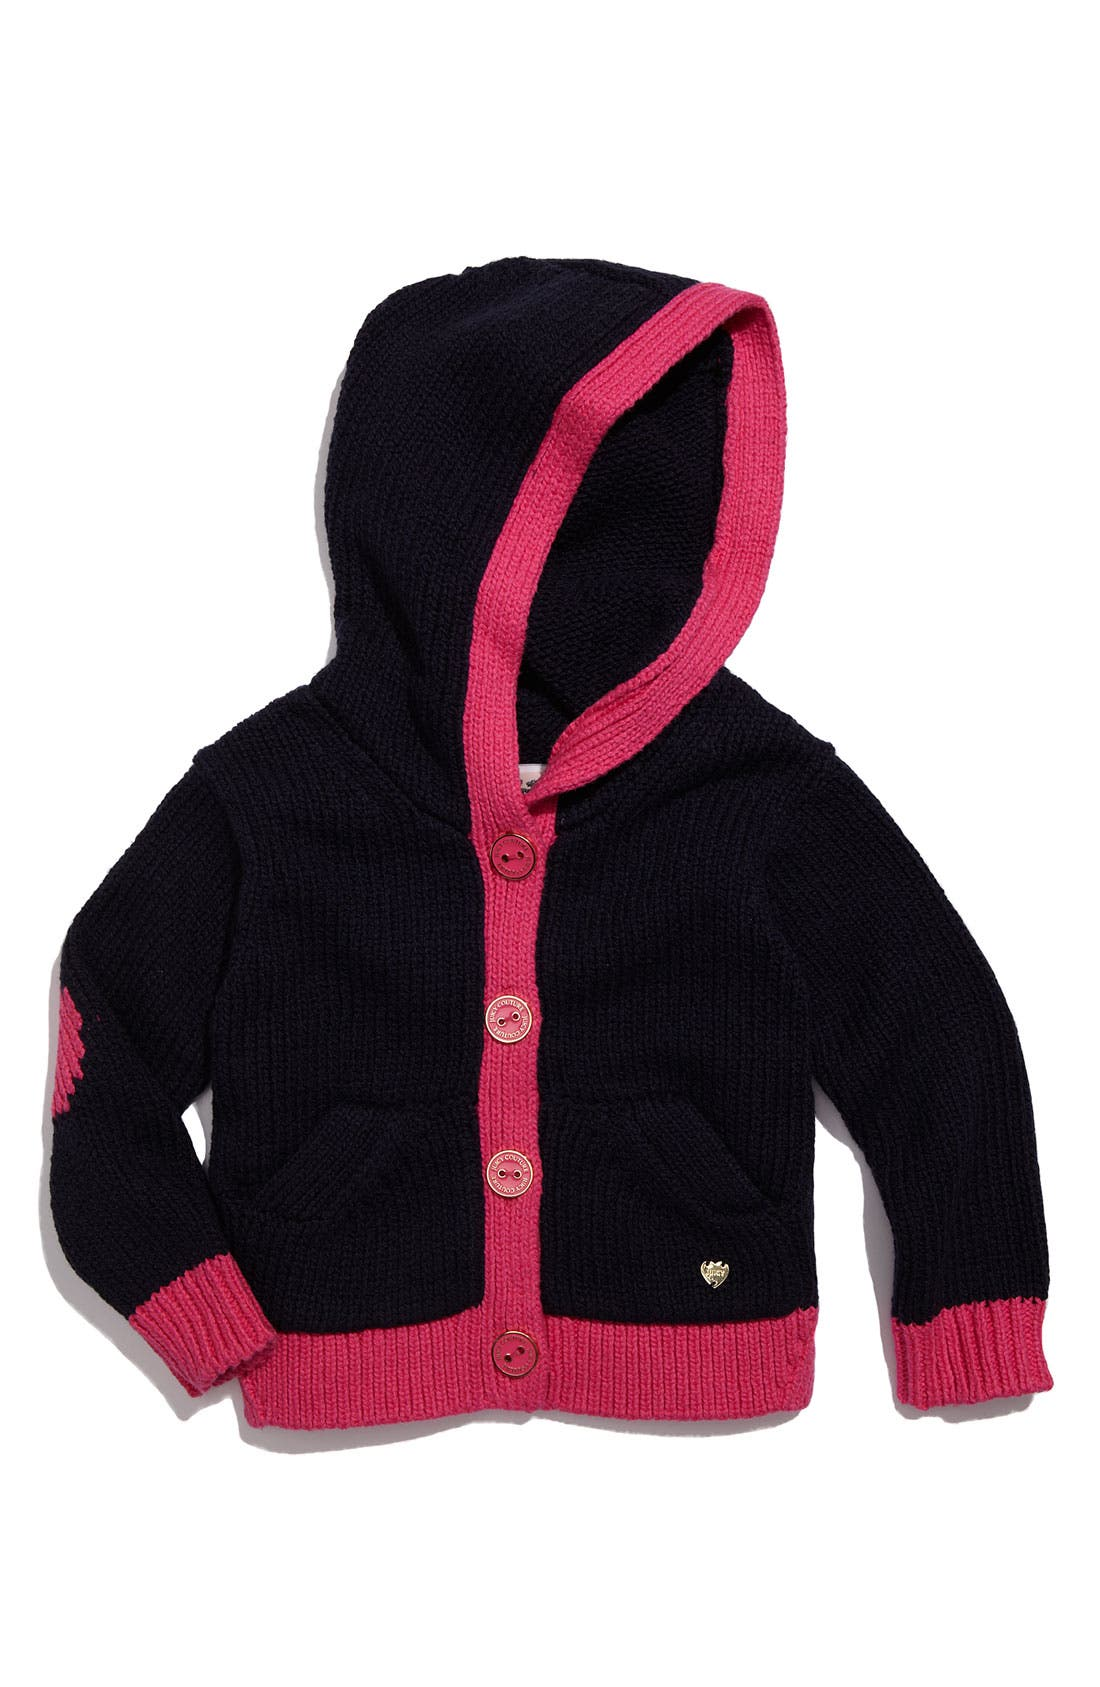 Main Image - Juicy Couture Hooded Cardigan (Toddler)